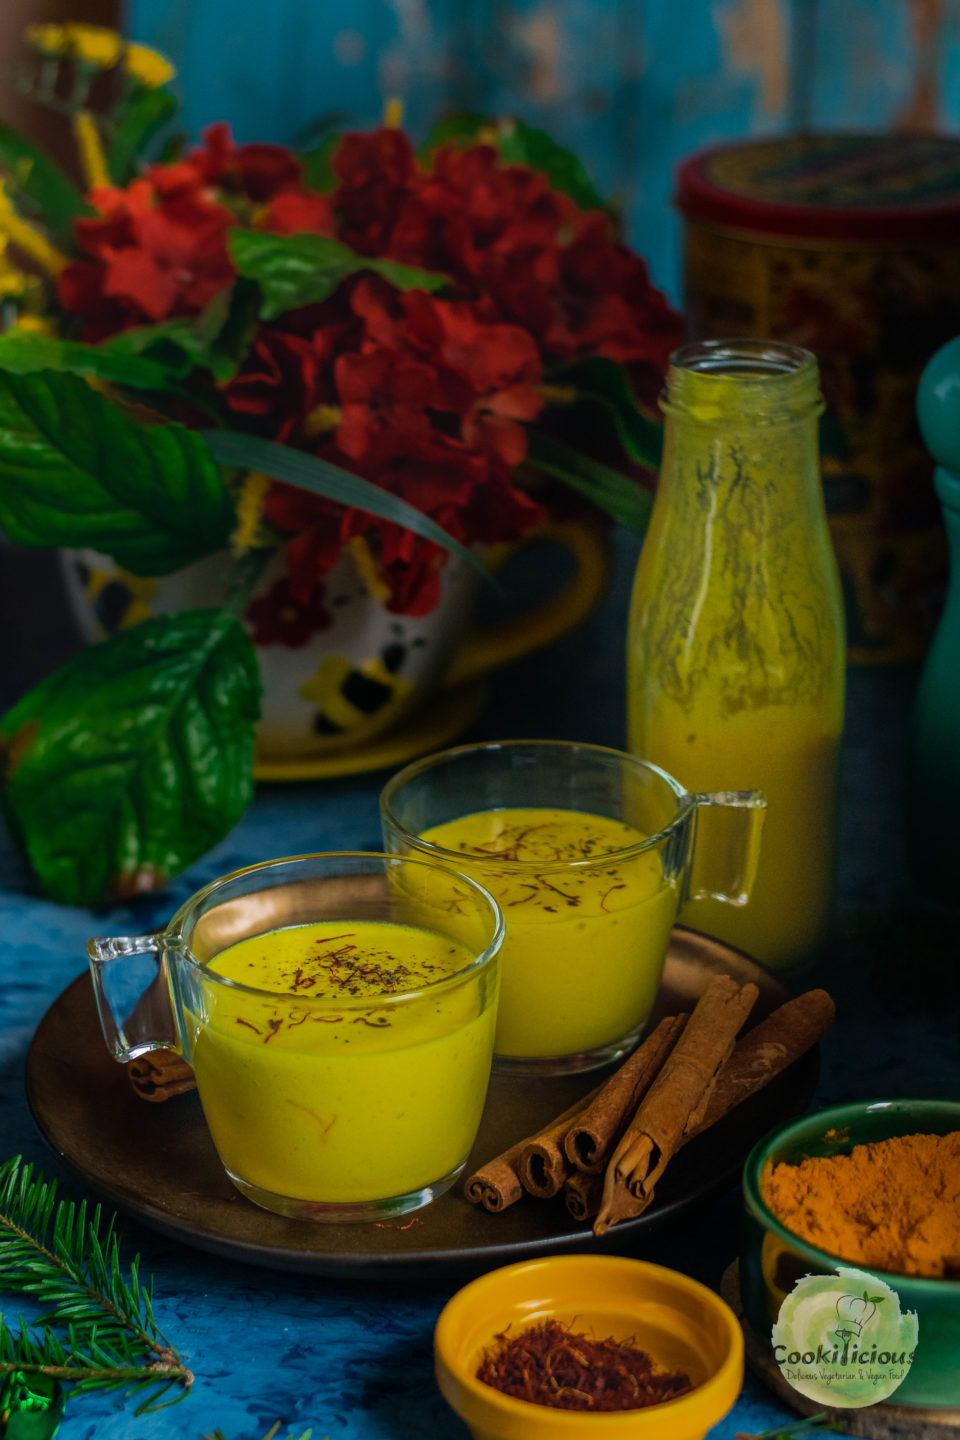 2 glasses of Iced Golden Milk with cinnamon sticks in it